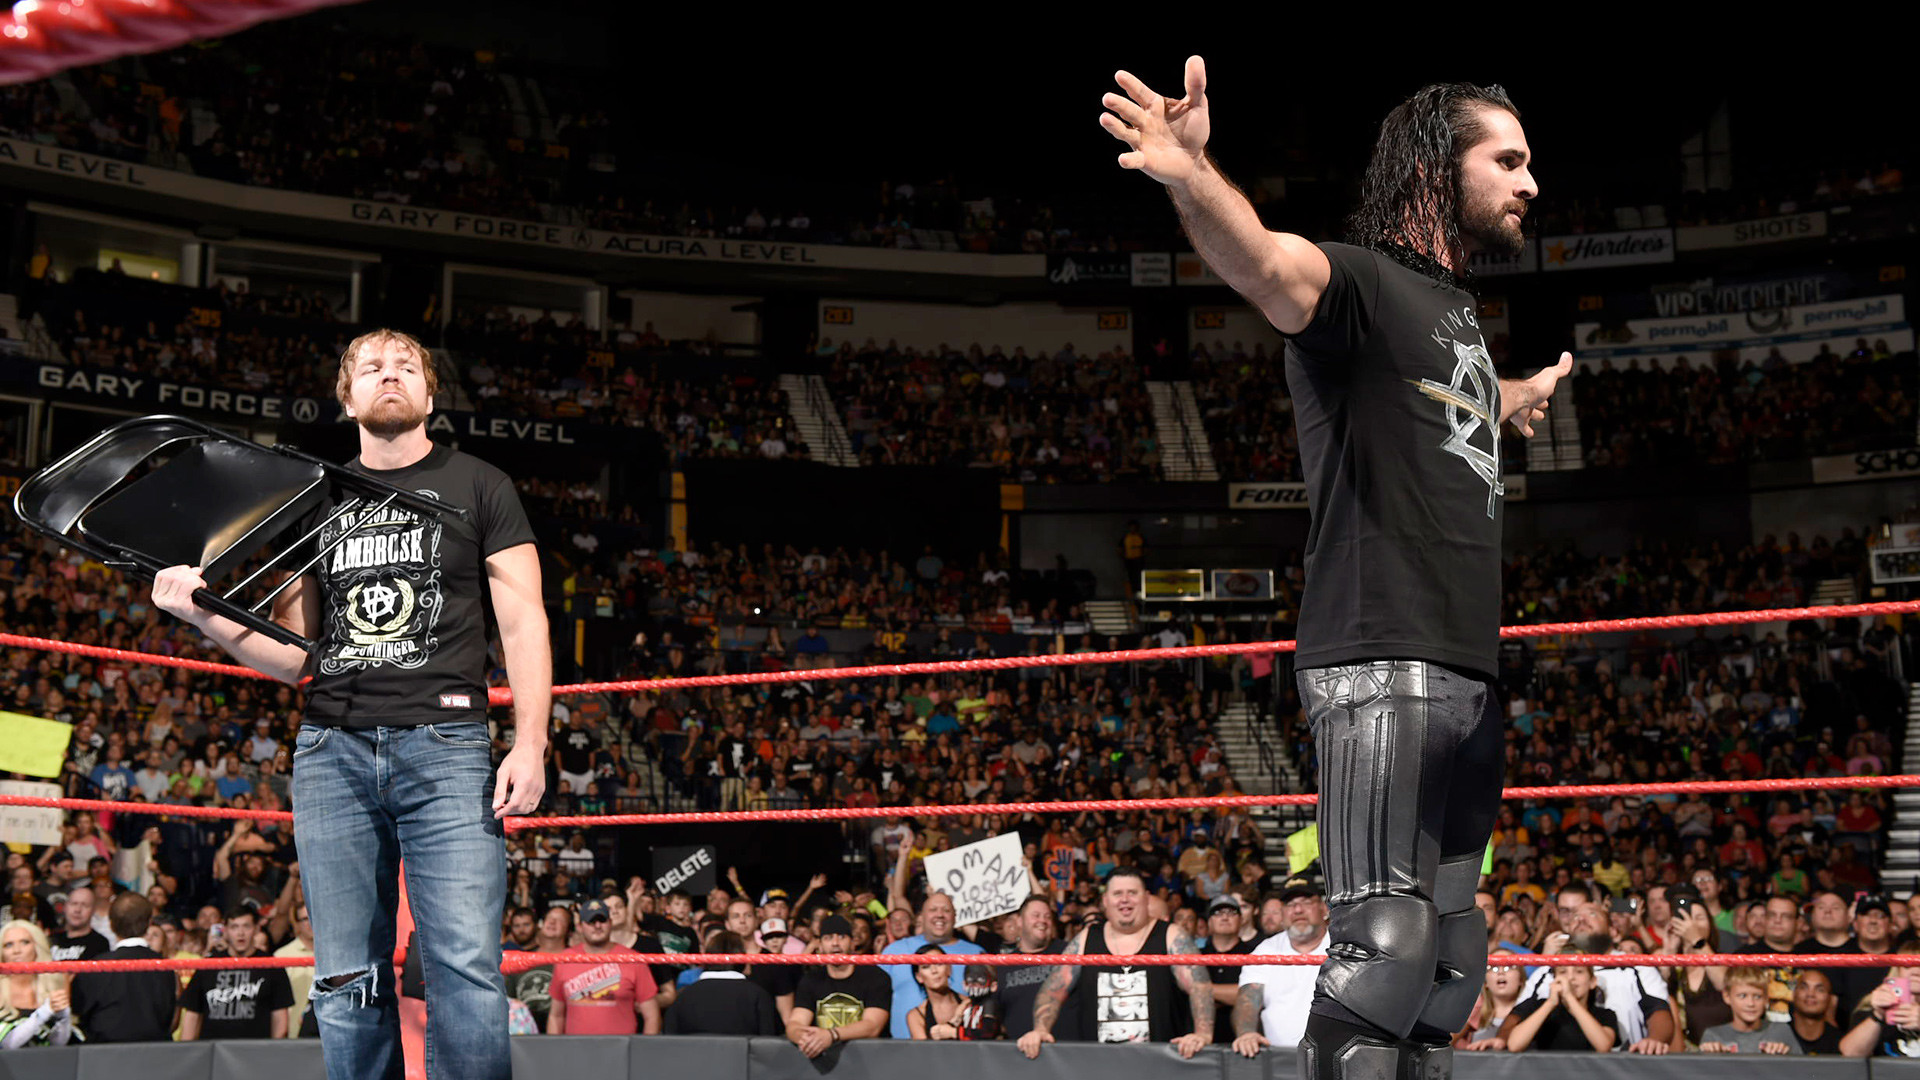 Don't let last week's unexpected rescue fool you: Dean Ambrose still isn't  down for a mini-Shield reunion with Seth Rollins.